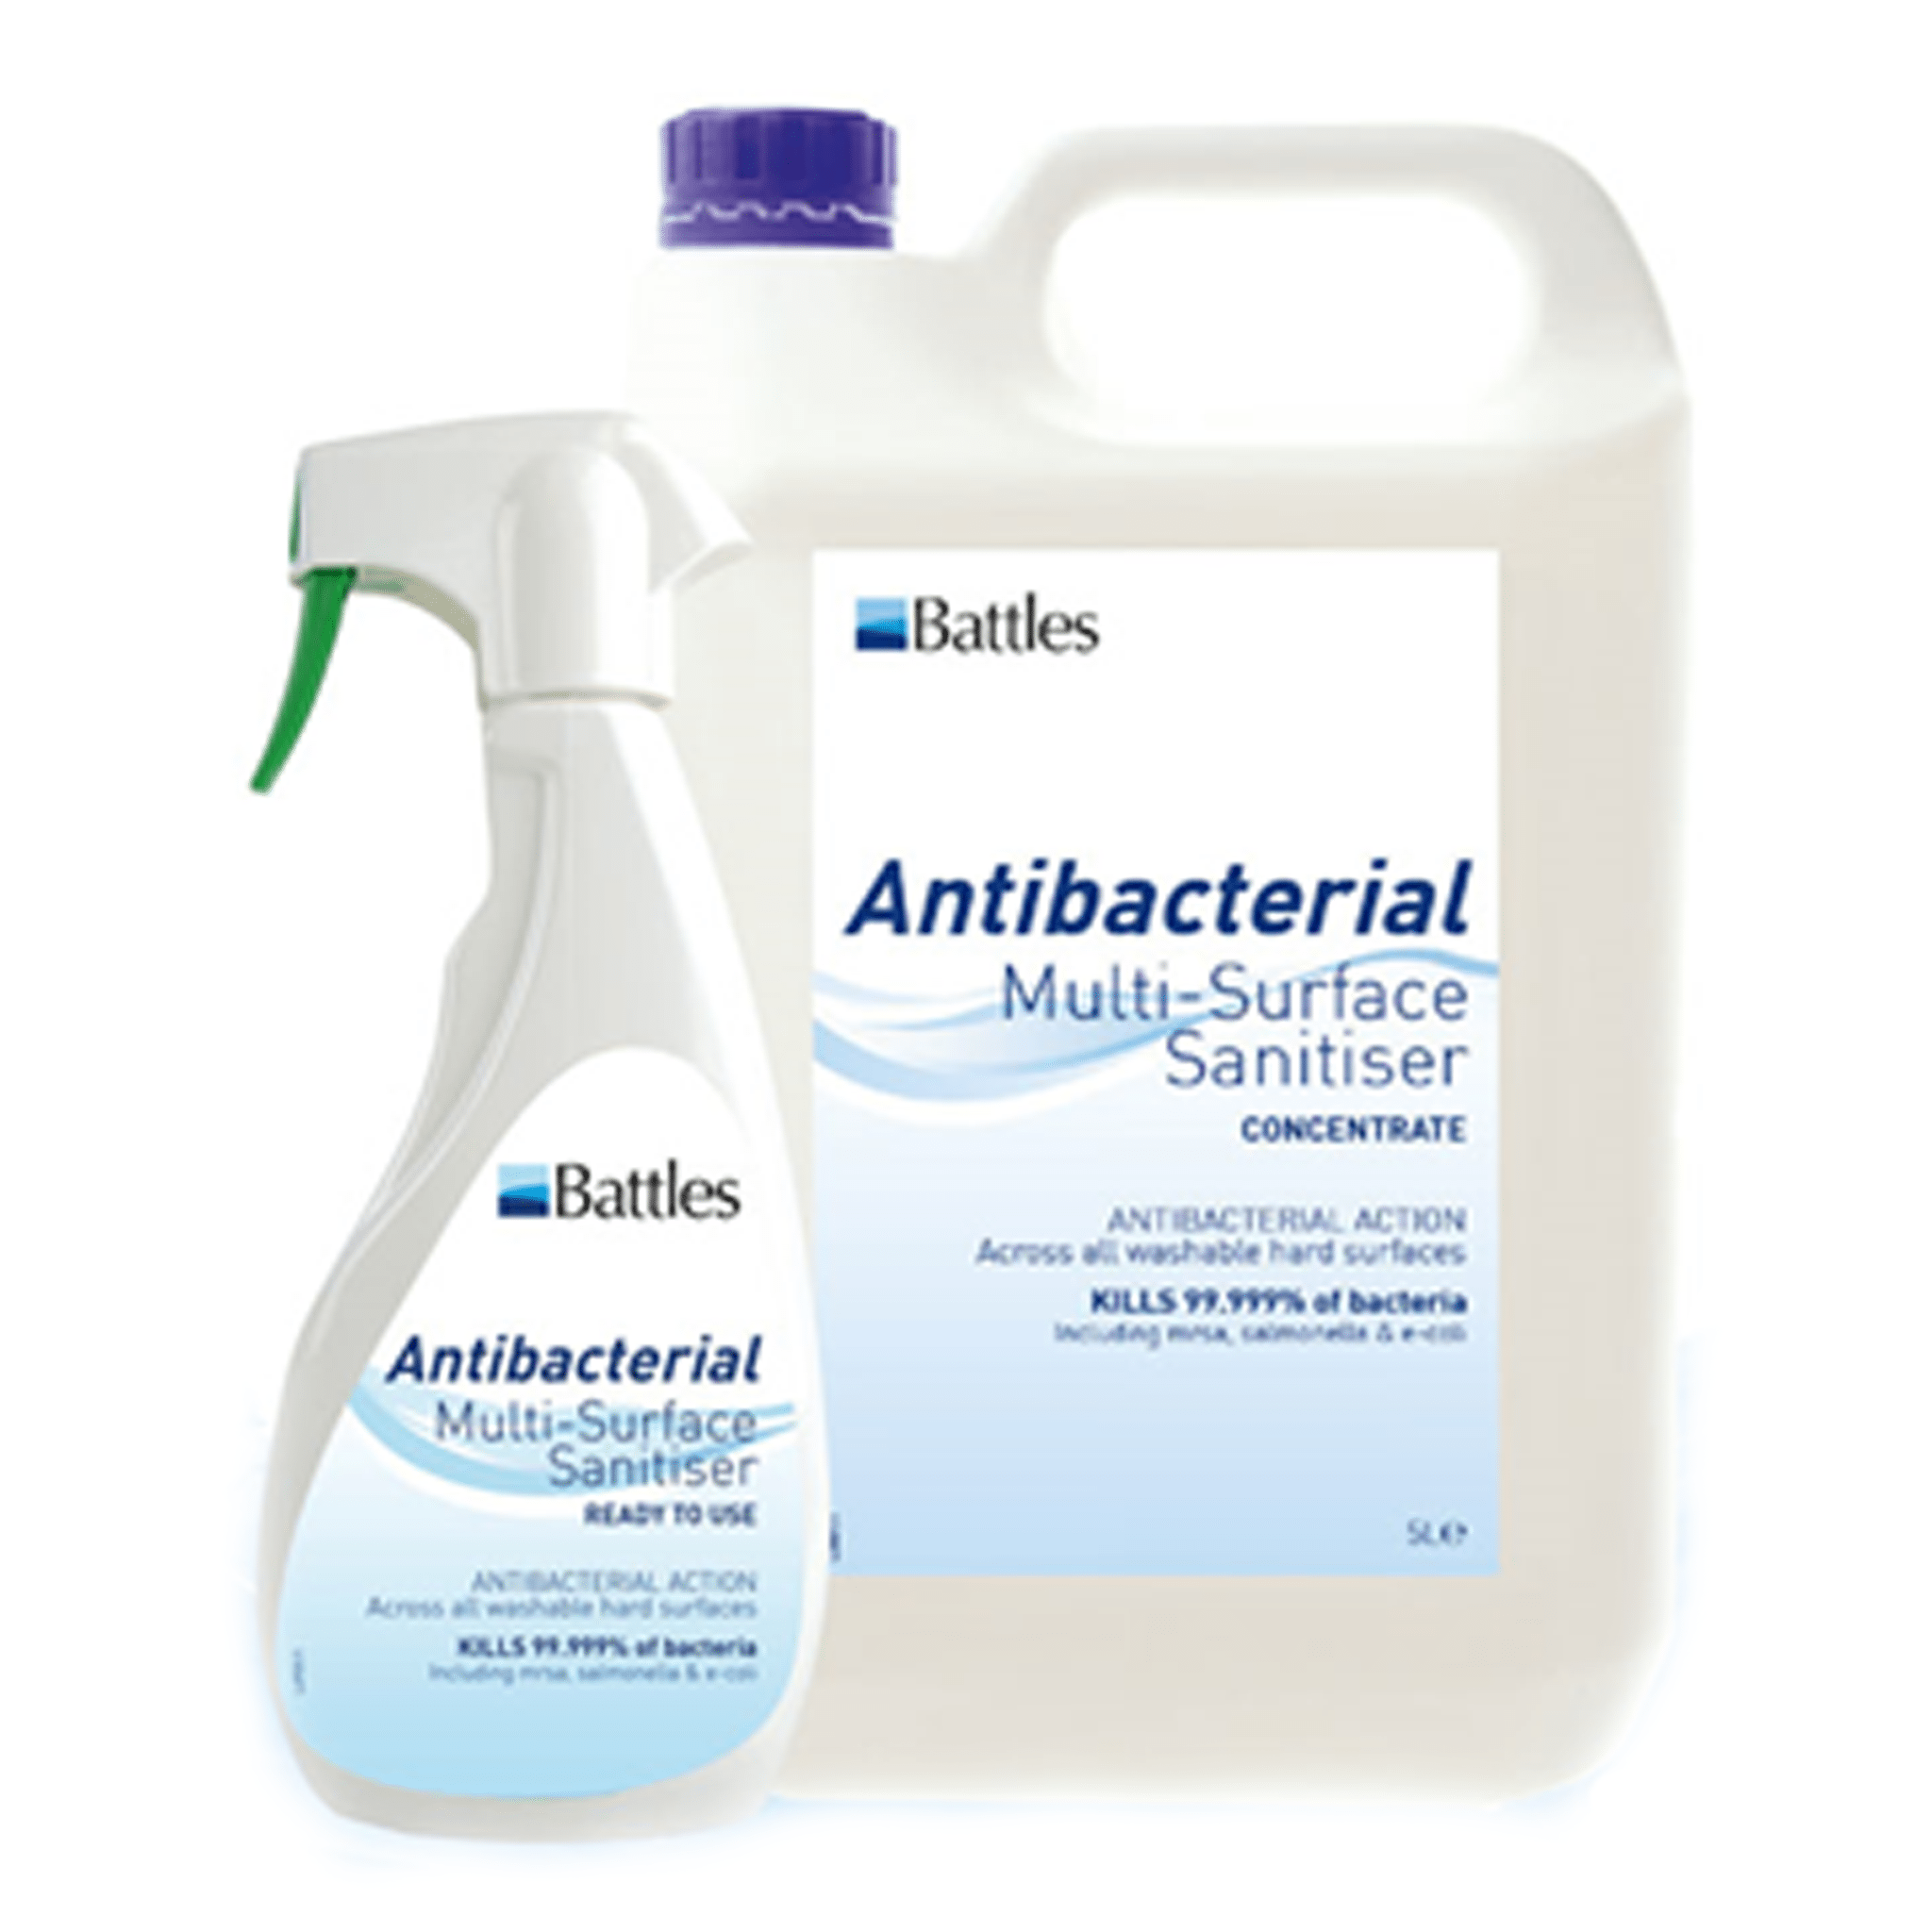 Battles Anti Bacterial Multi Surface Sanitiser 29652